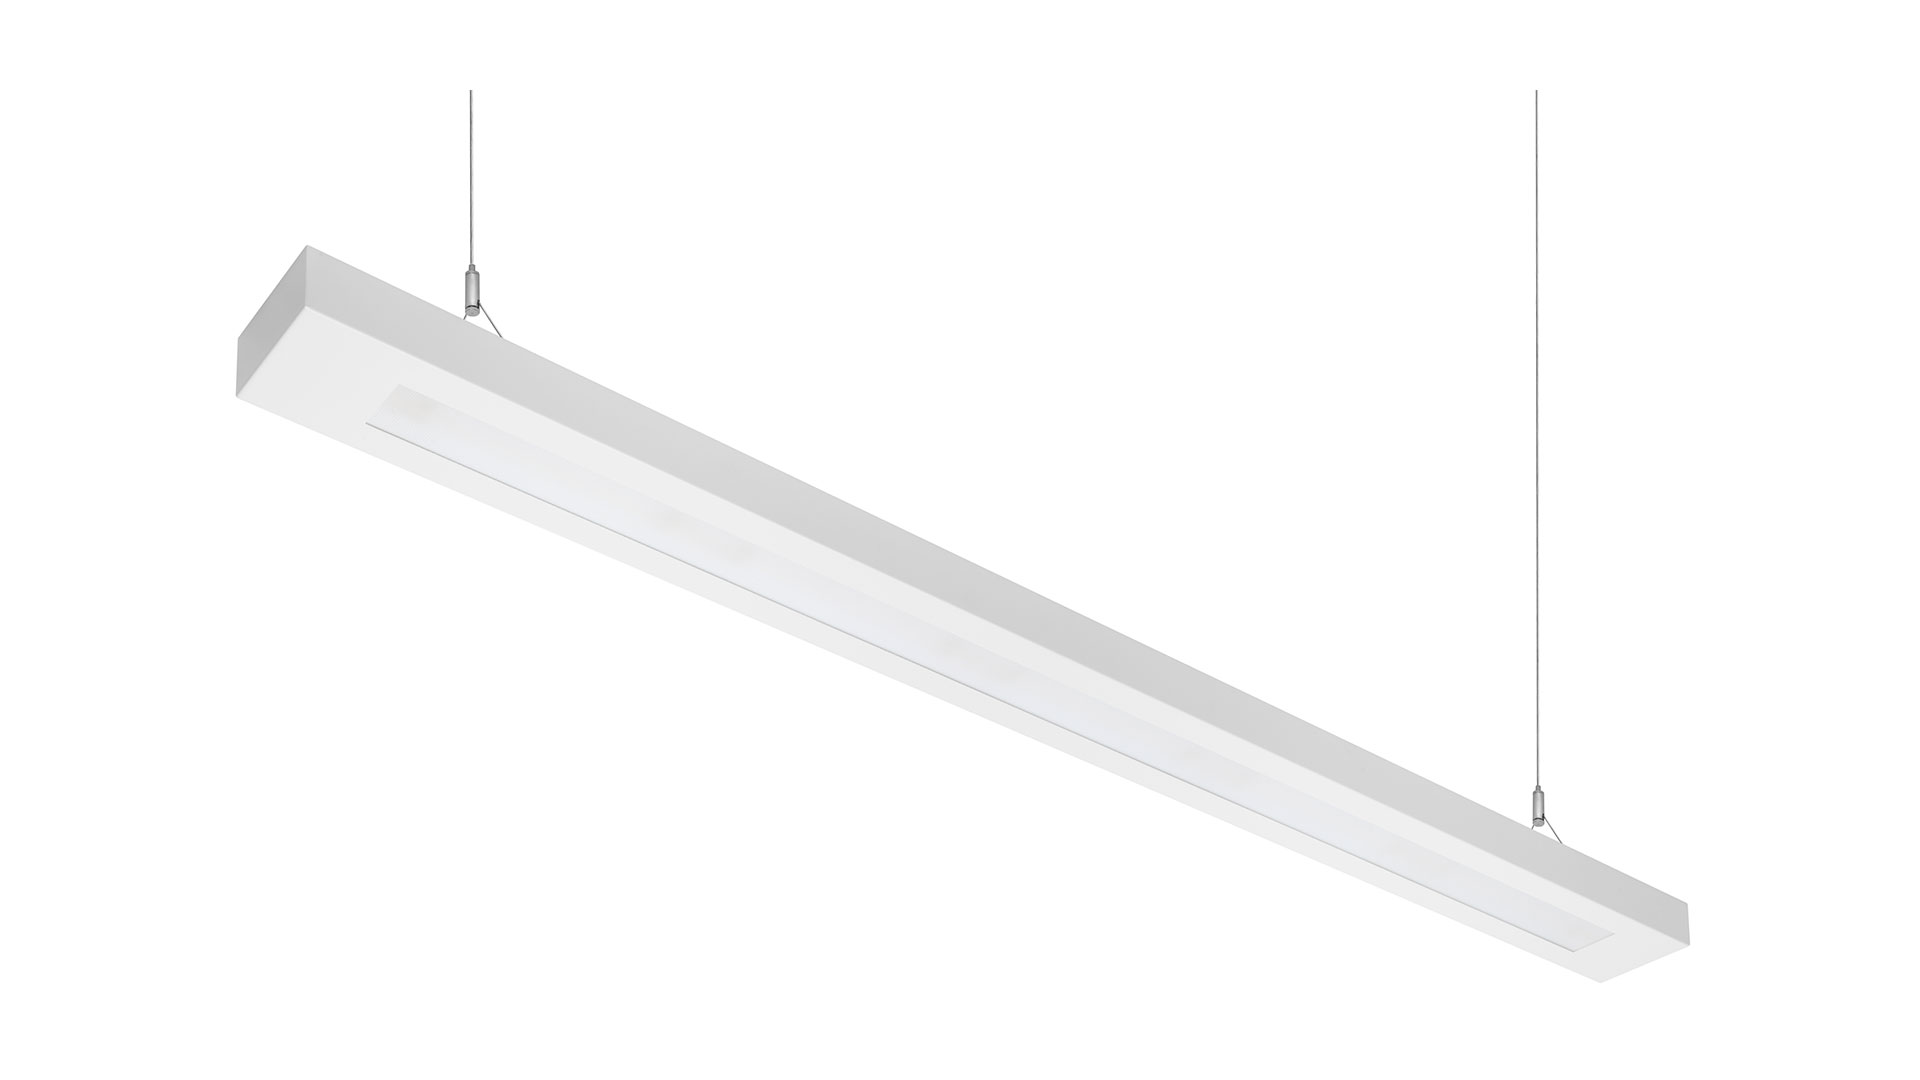 Image of product type  LAMBDA LED SUSPENDED